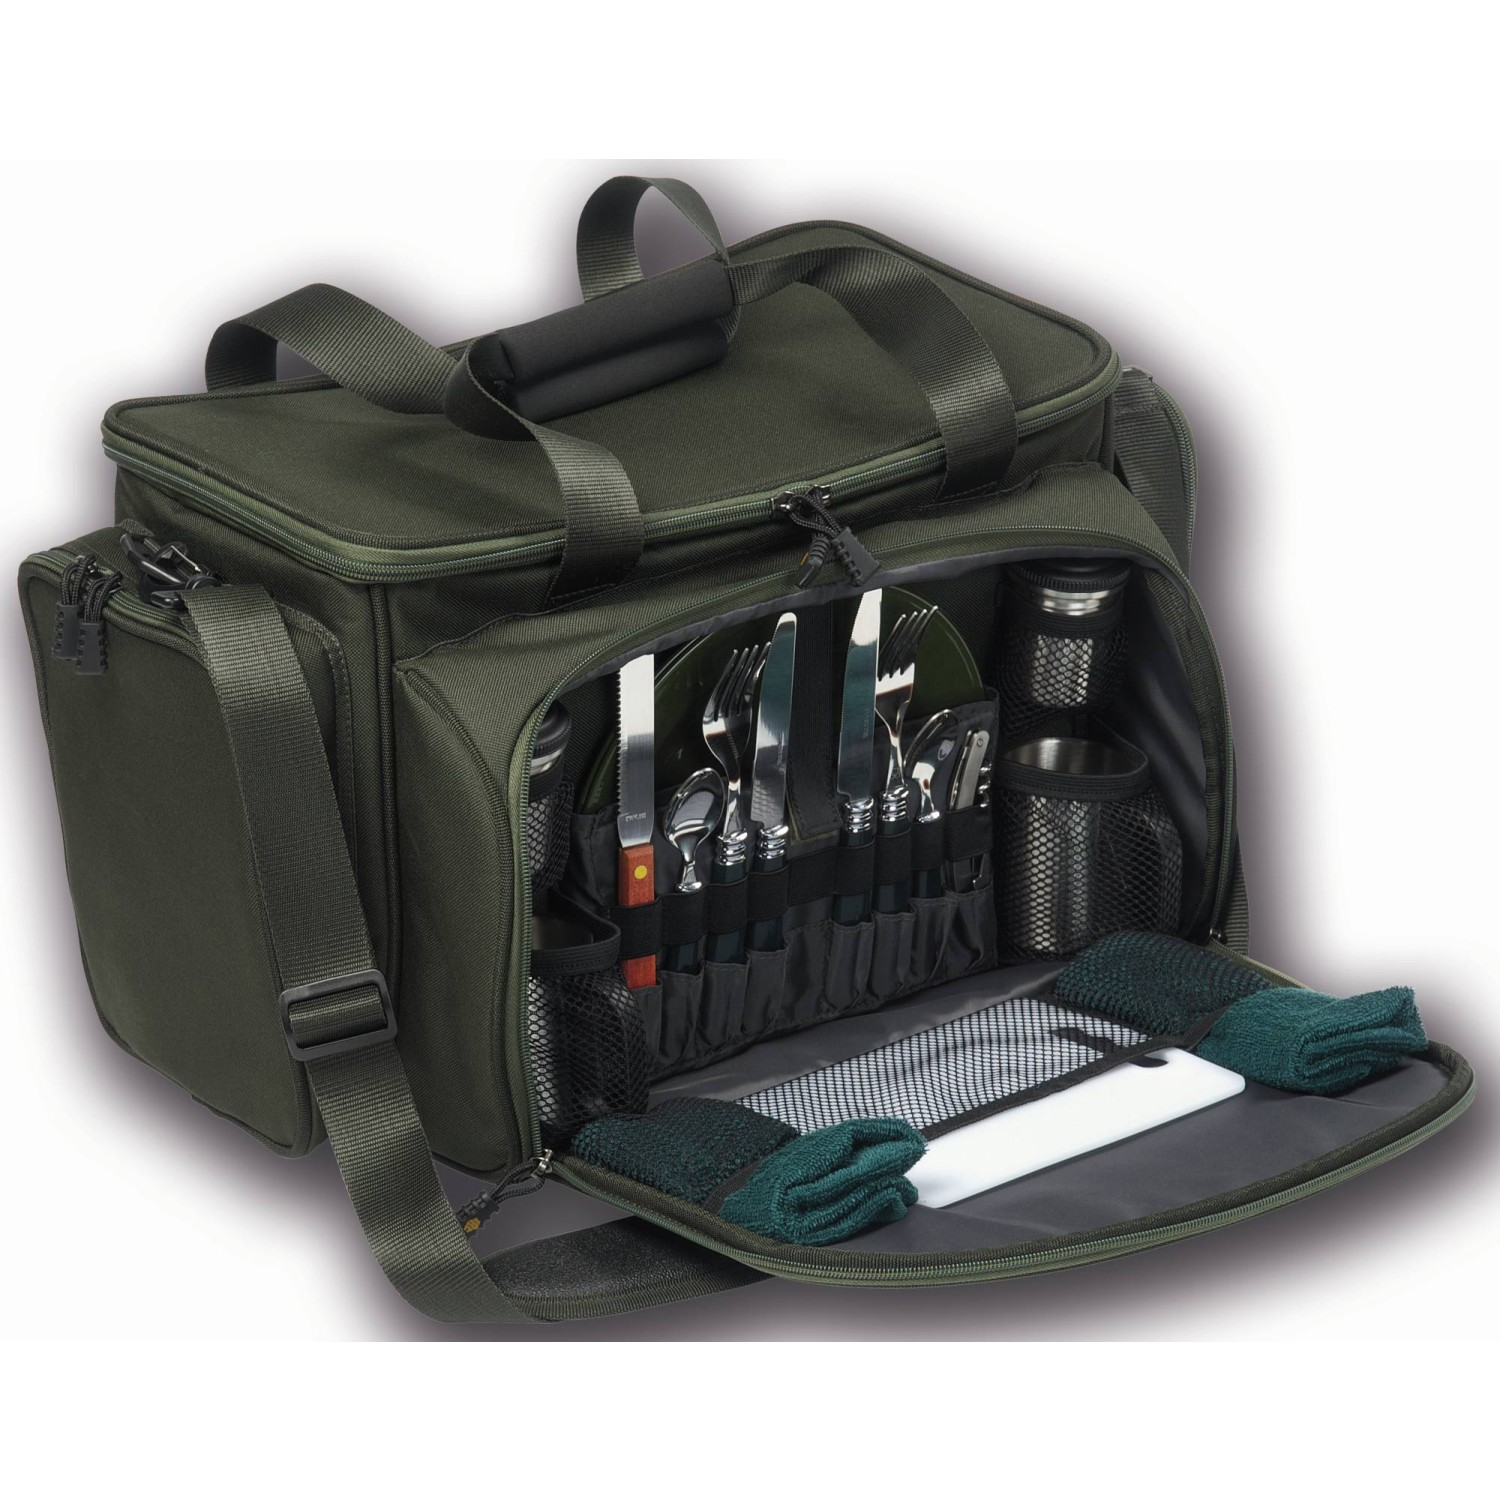 JRC Contact Cooler Food Bag, 53 x 30 x 30cm